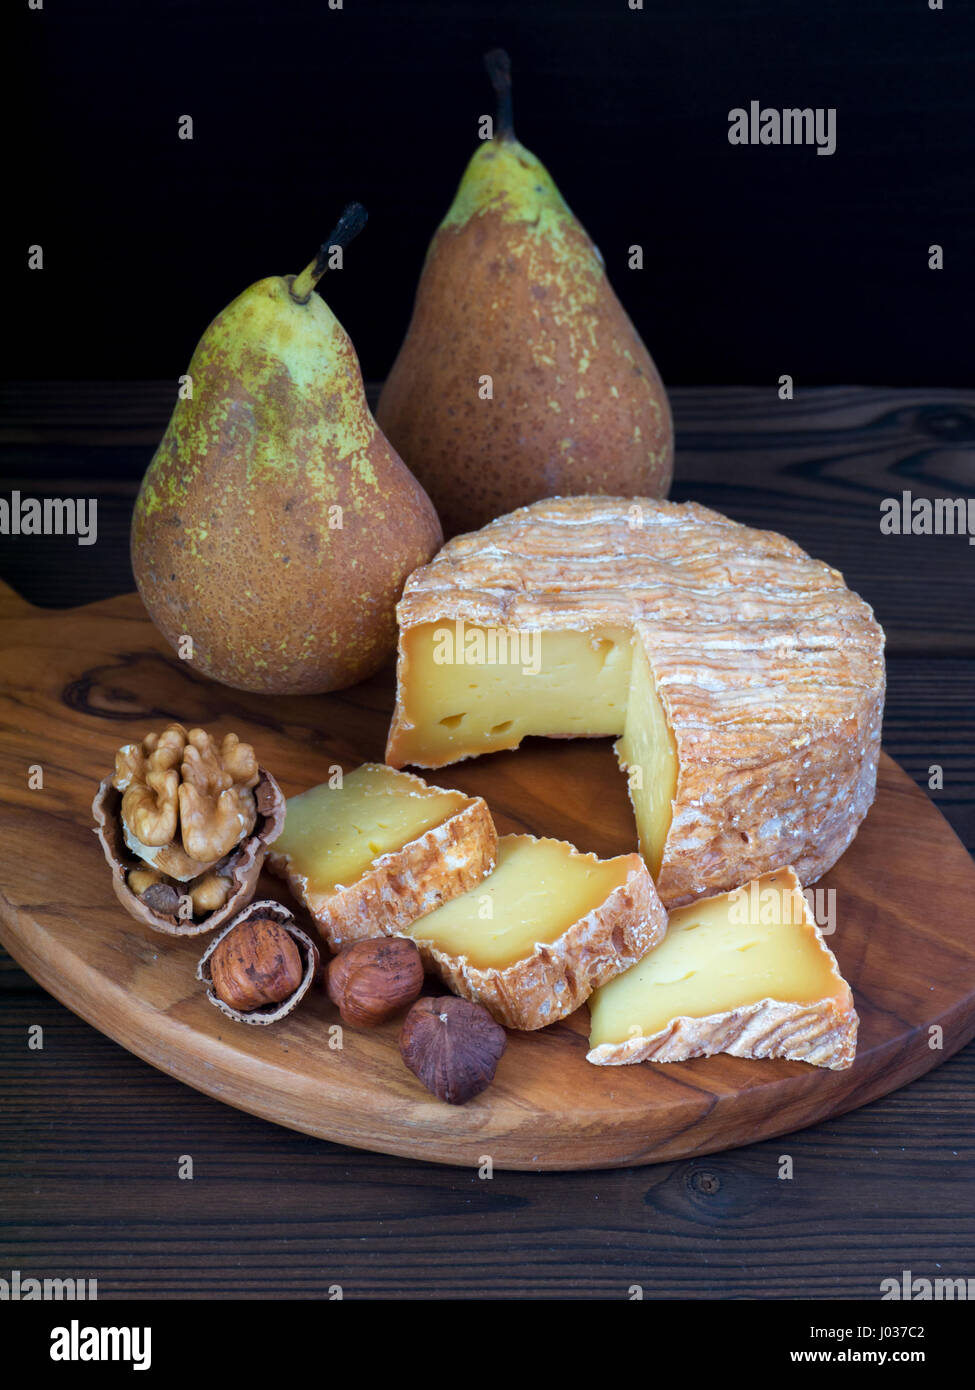 Soft washed-rind cheese, walnut, hazelnuts and pears on the wooden board - Stock Image